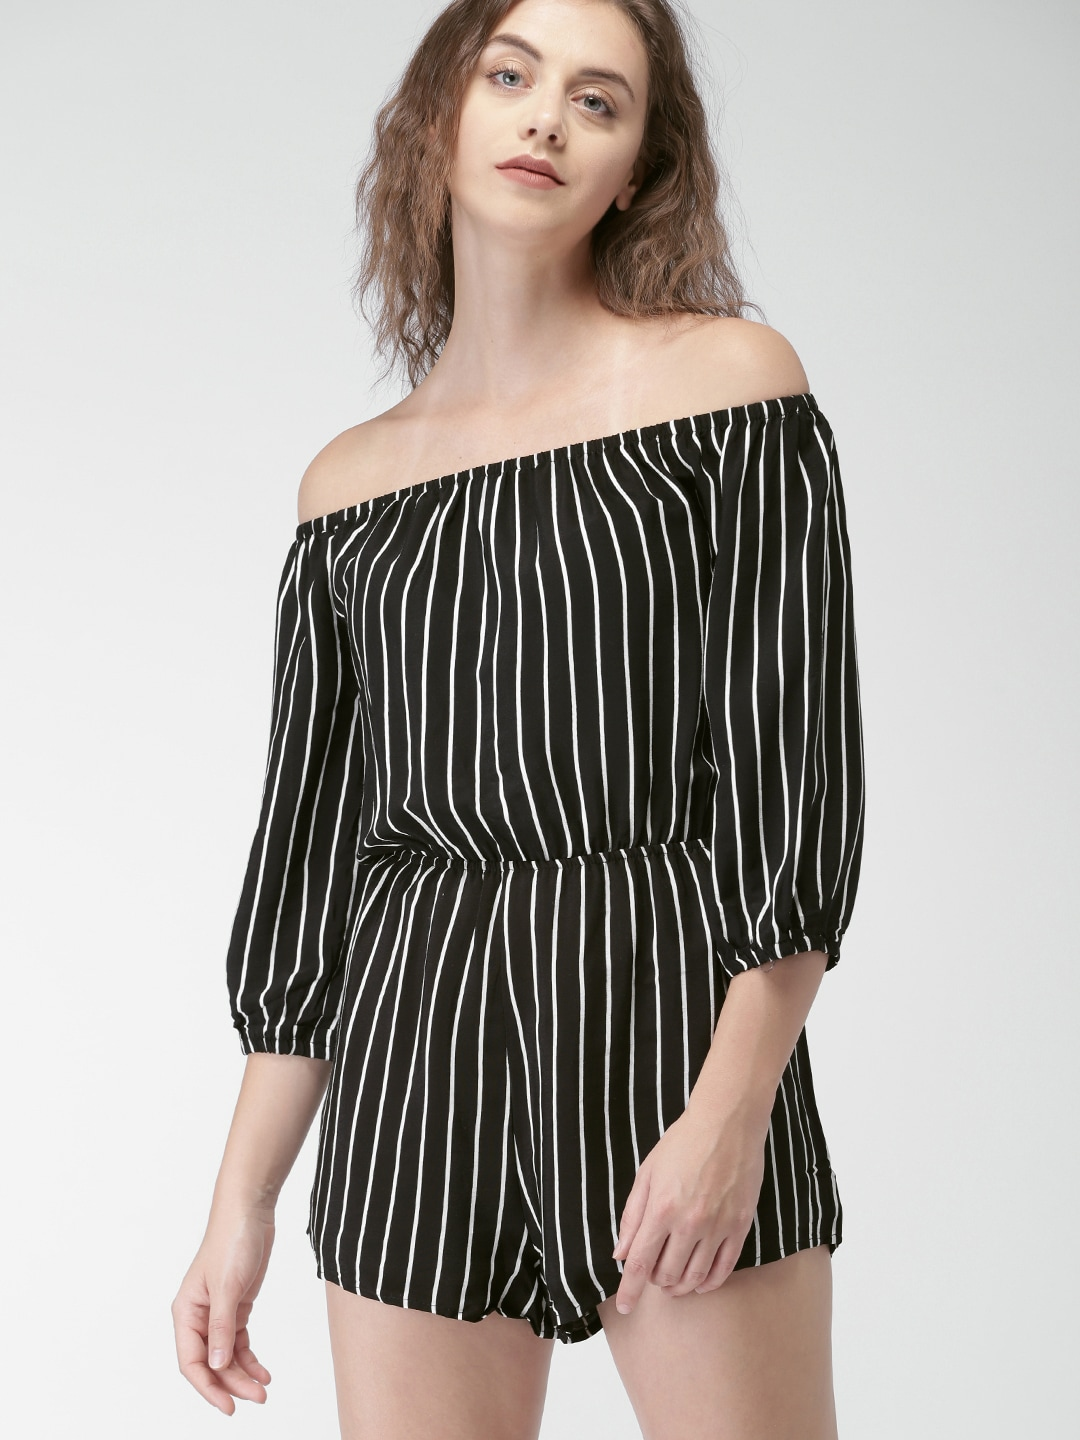 691a9c5ce7e Buy FOREVER 21 White   Red Striped Playsuit - Jumpsuit for Women ...